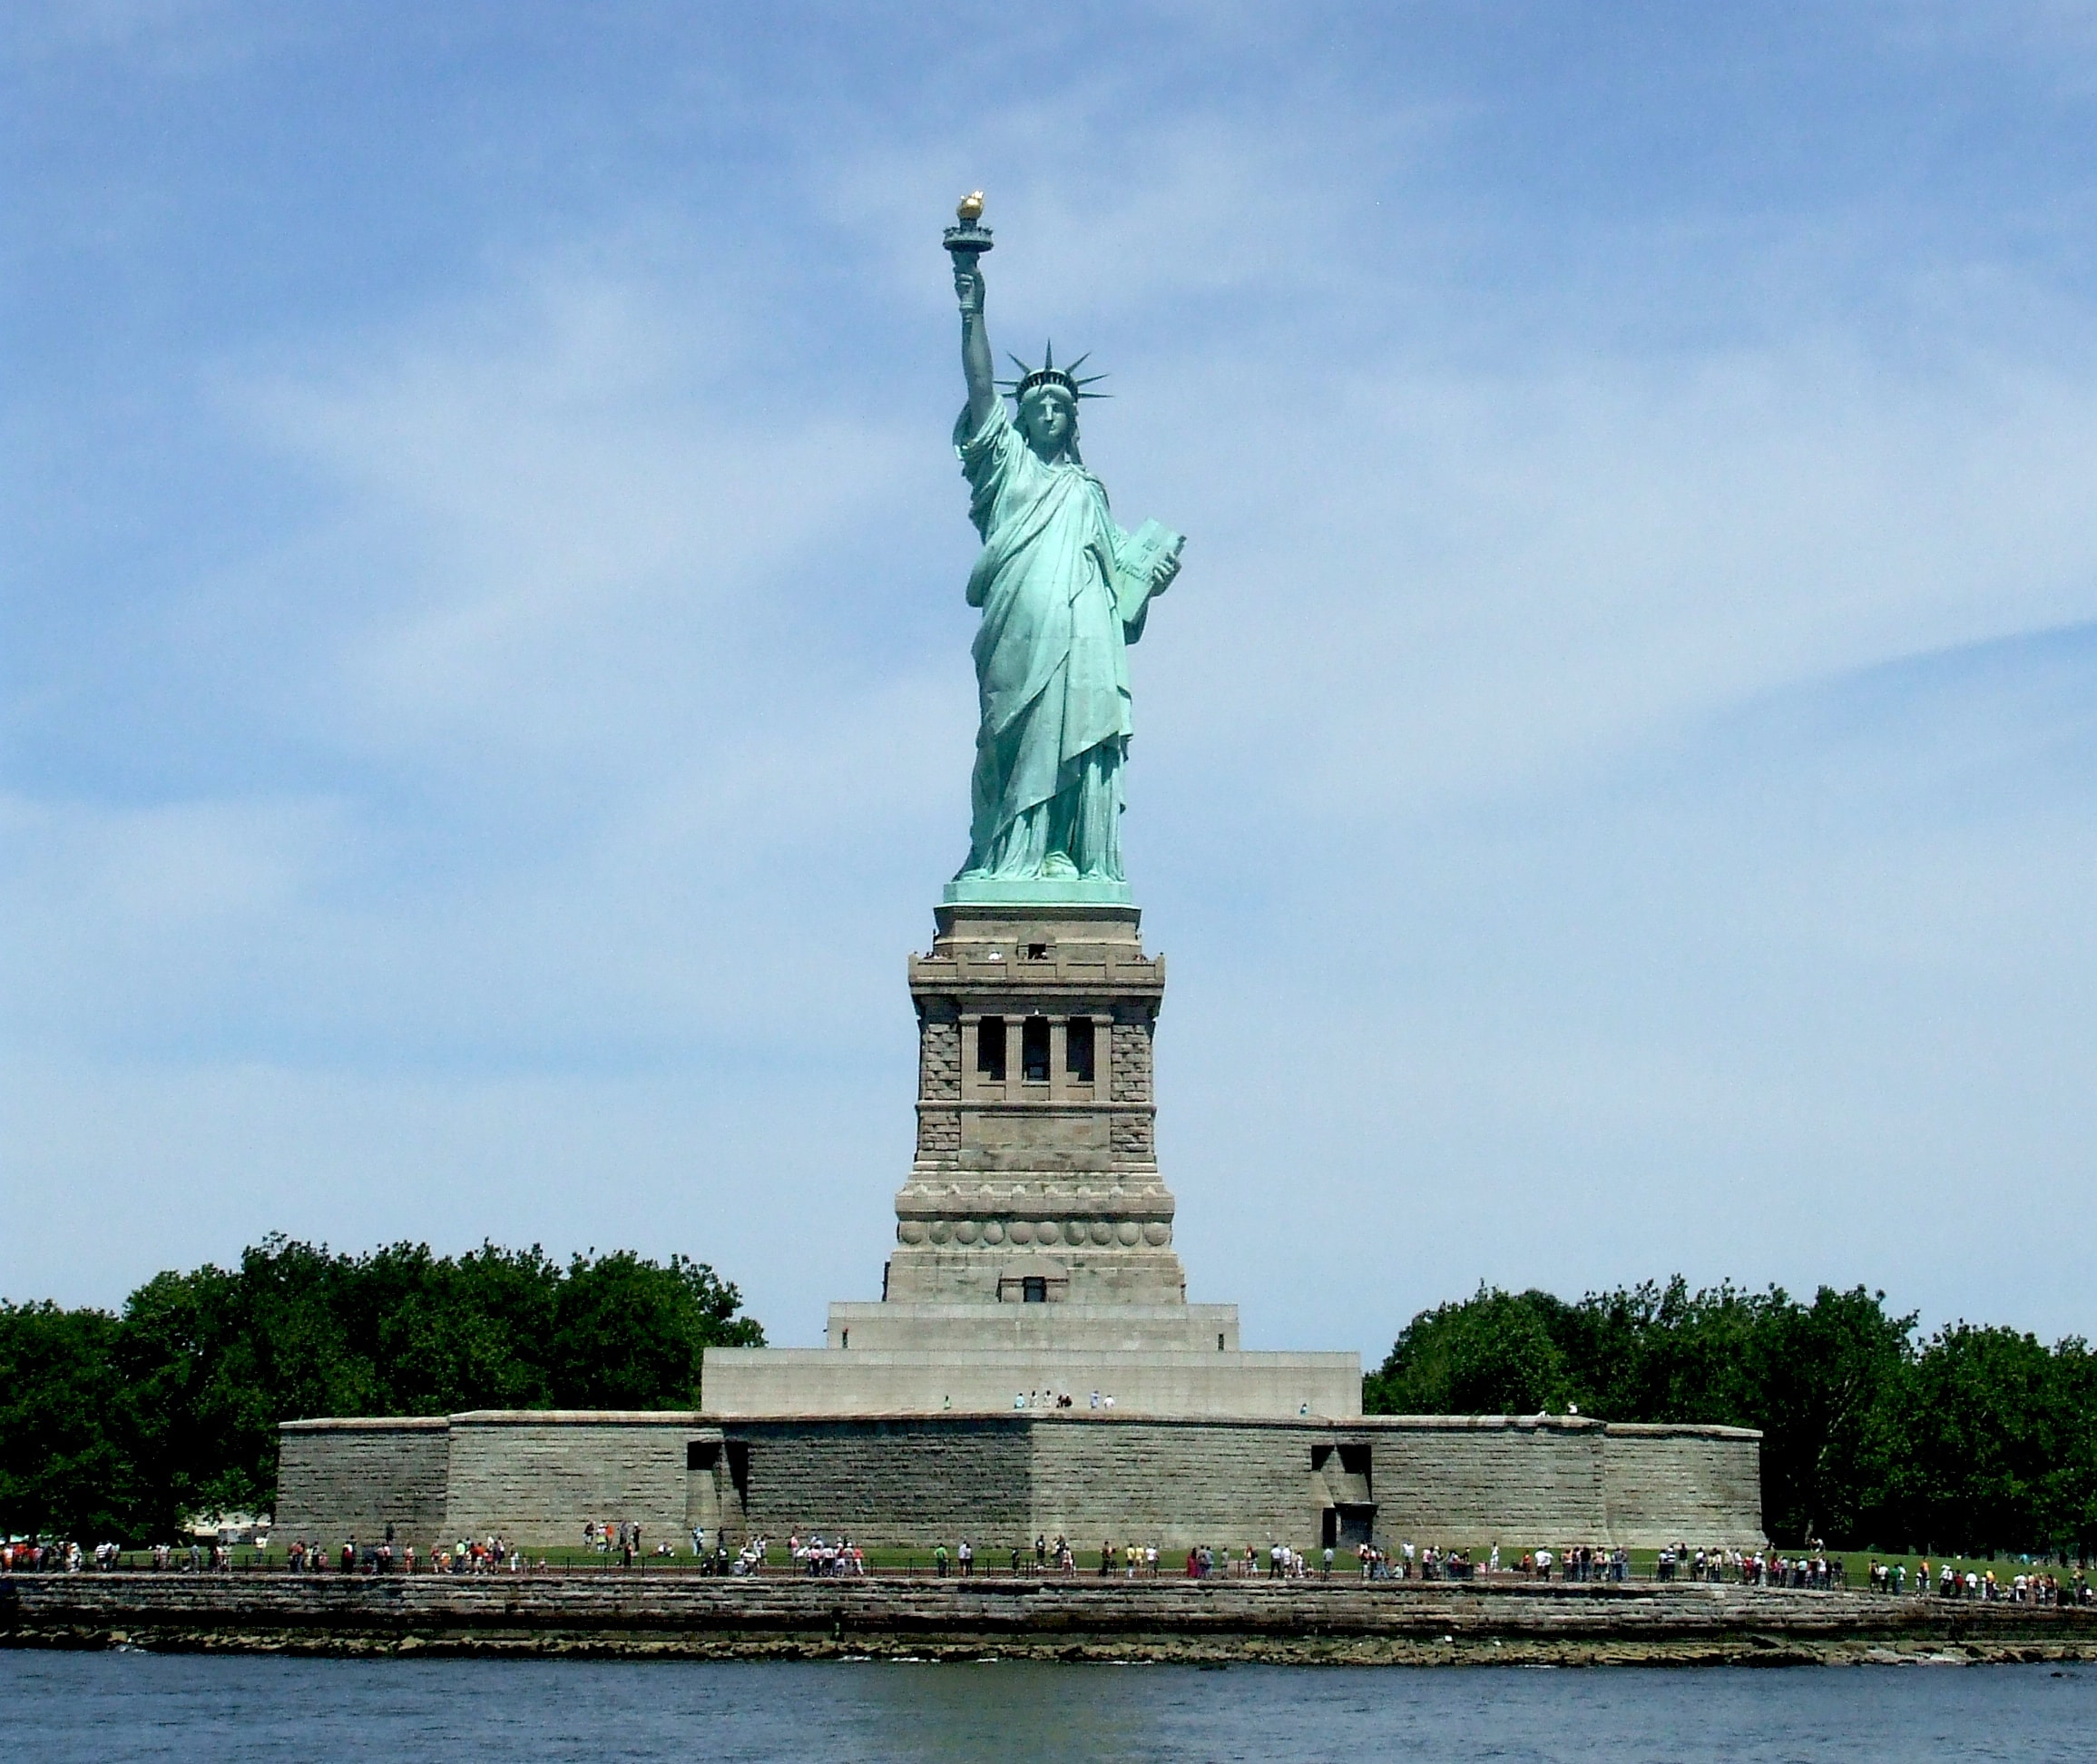 The Statue of Liberty, an enduring symbol of the American dream. Credit: Wikimedia Commons